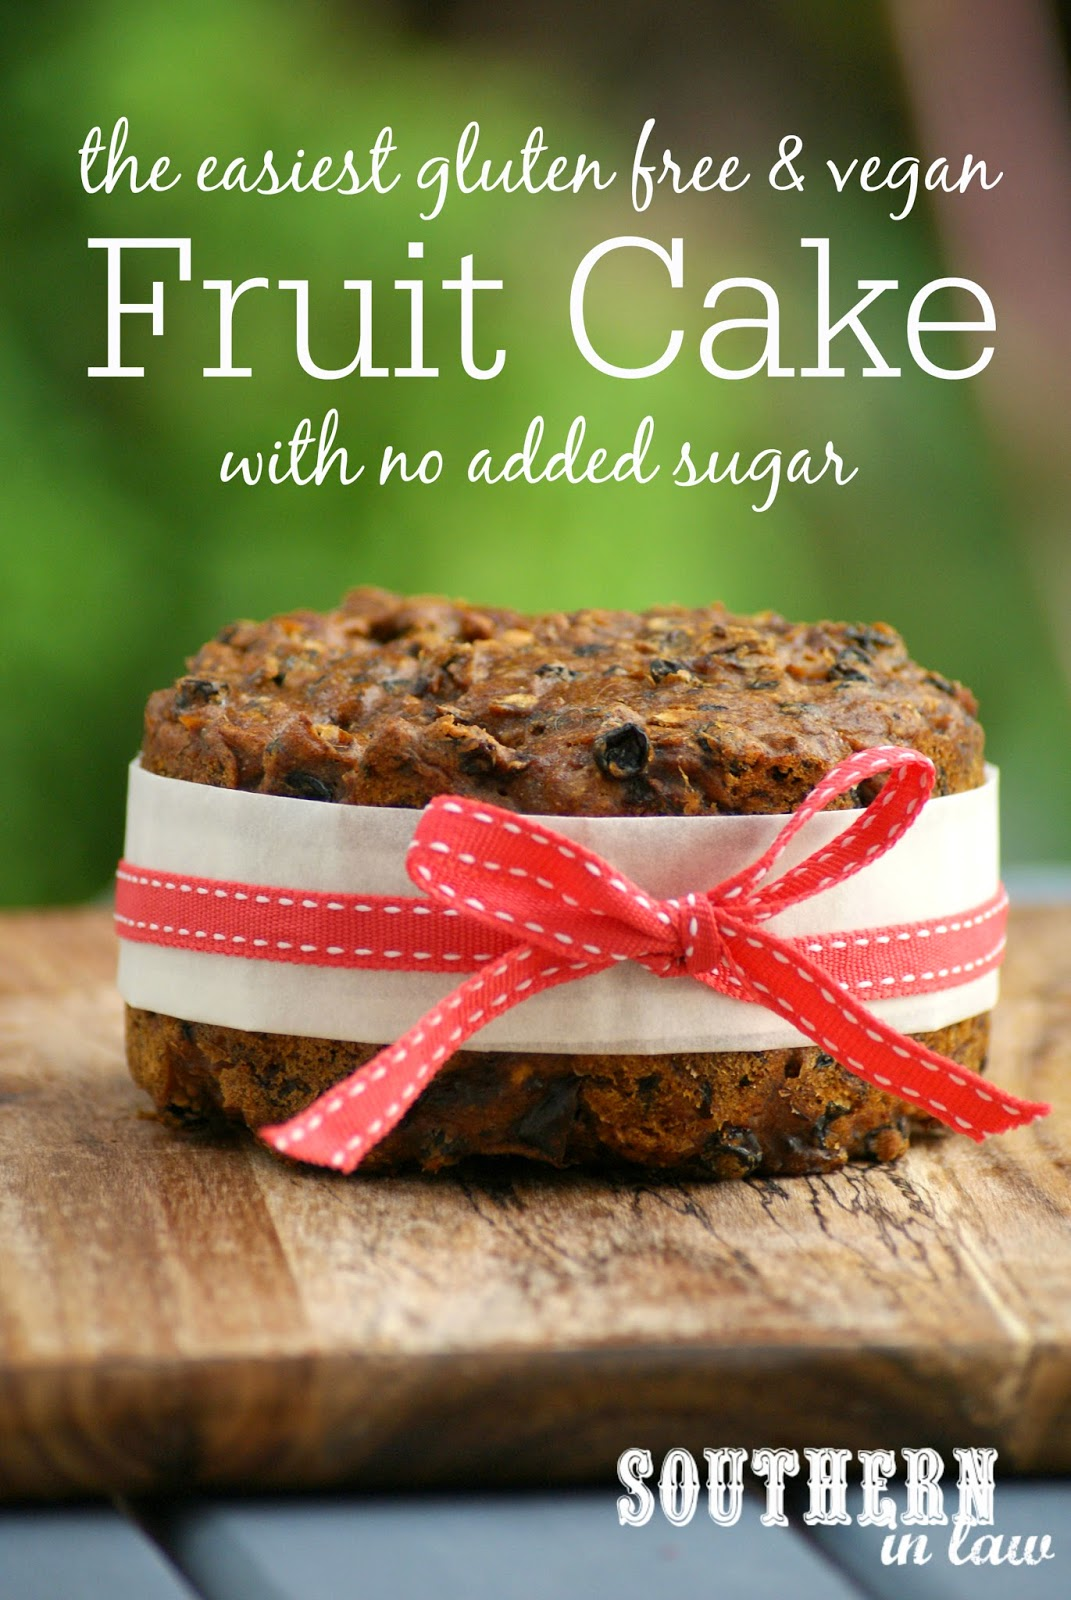 Dairy And Gluten Free Christmas Cake For Sale